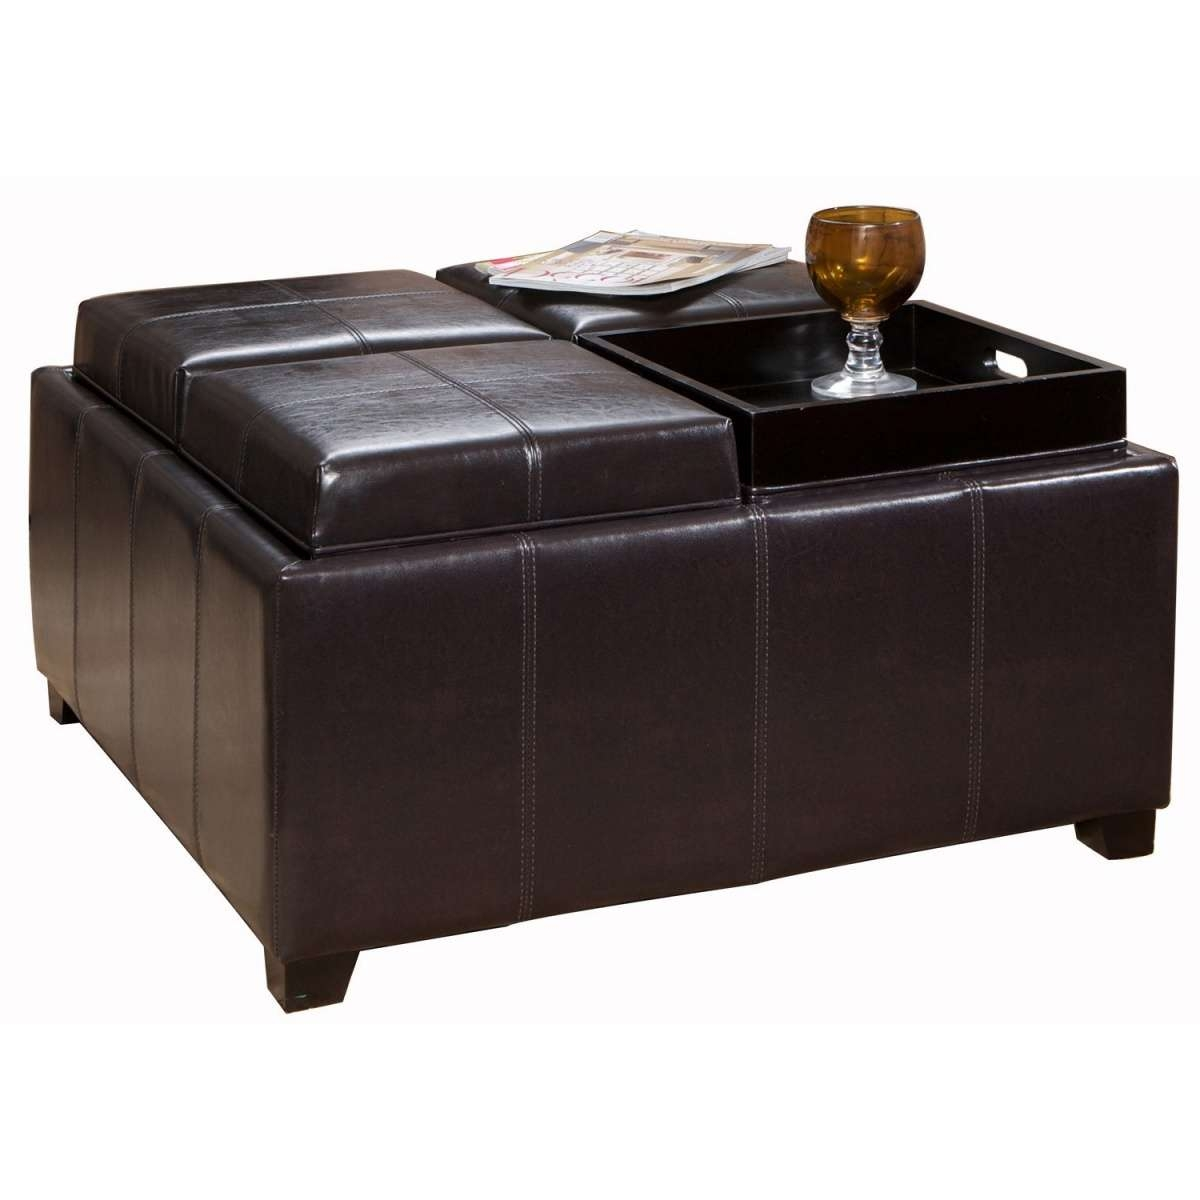 Coffee Tables Ideas: Storage Brown Leather Ottoman Coffee Table With Regard To Famous Brown Leather Ottoman Coffee Tables (View 9 of 20)